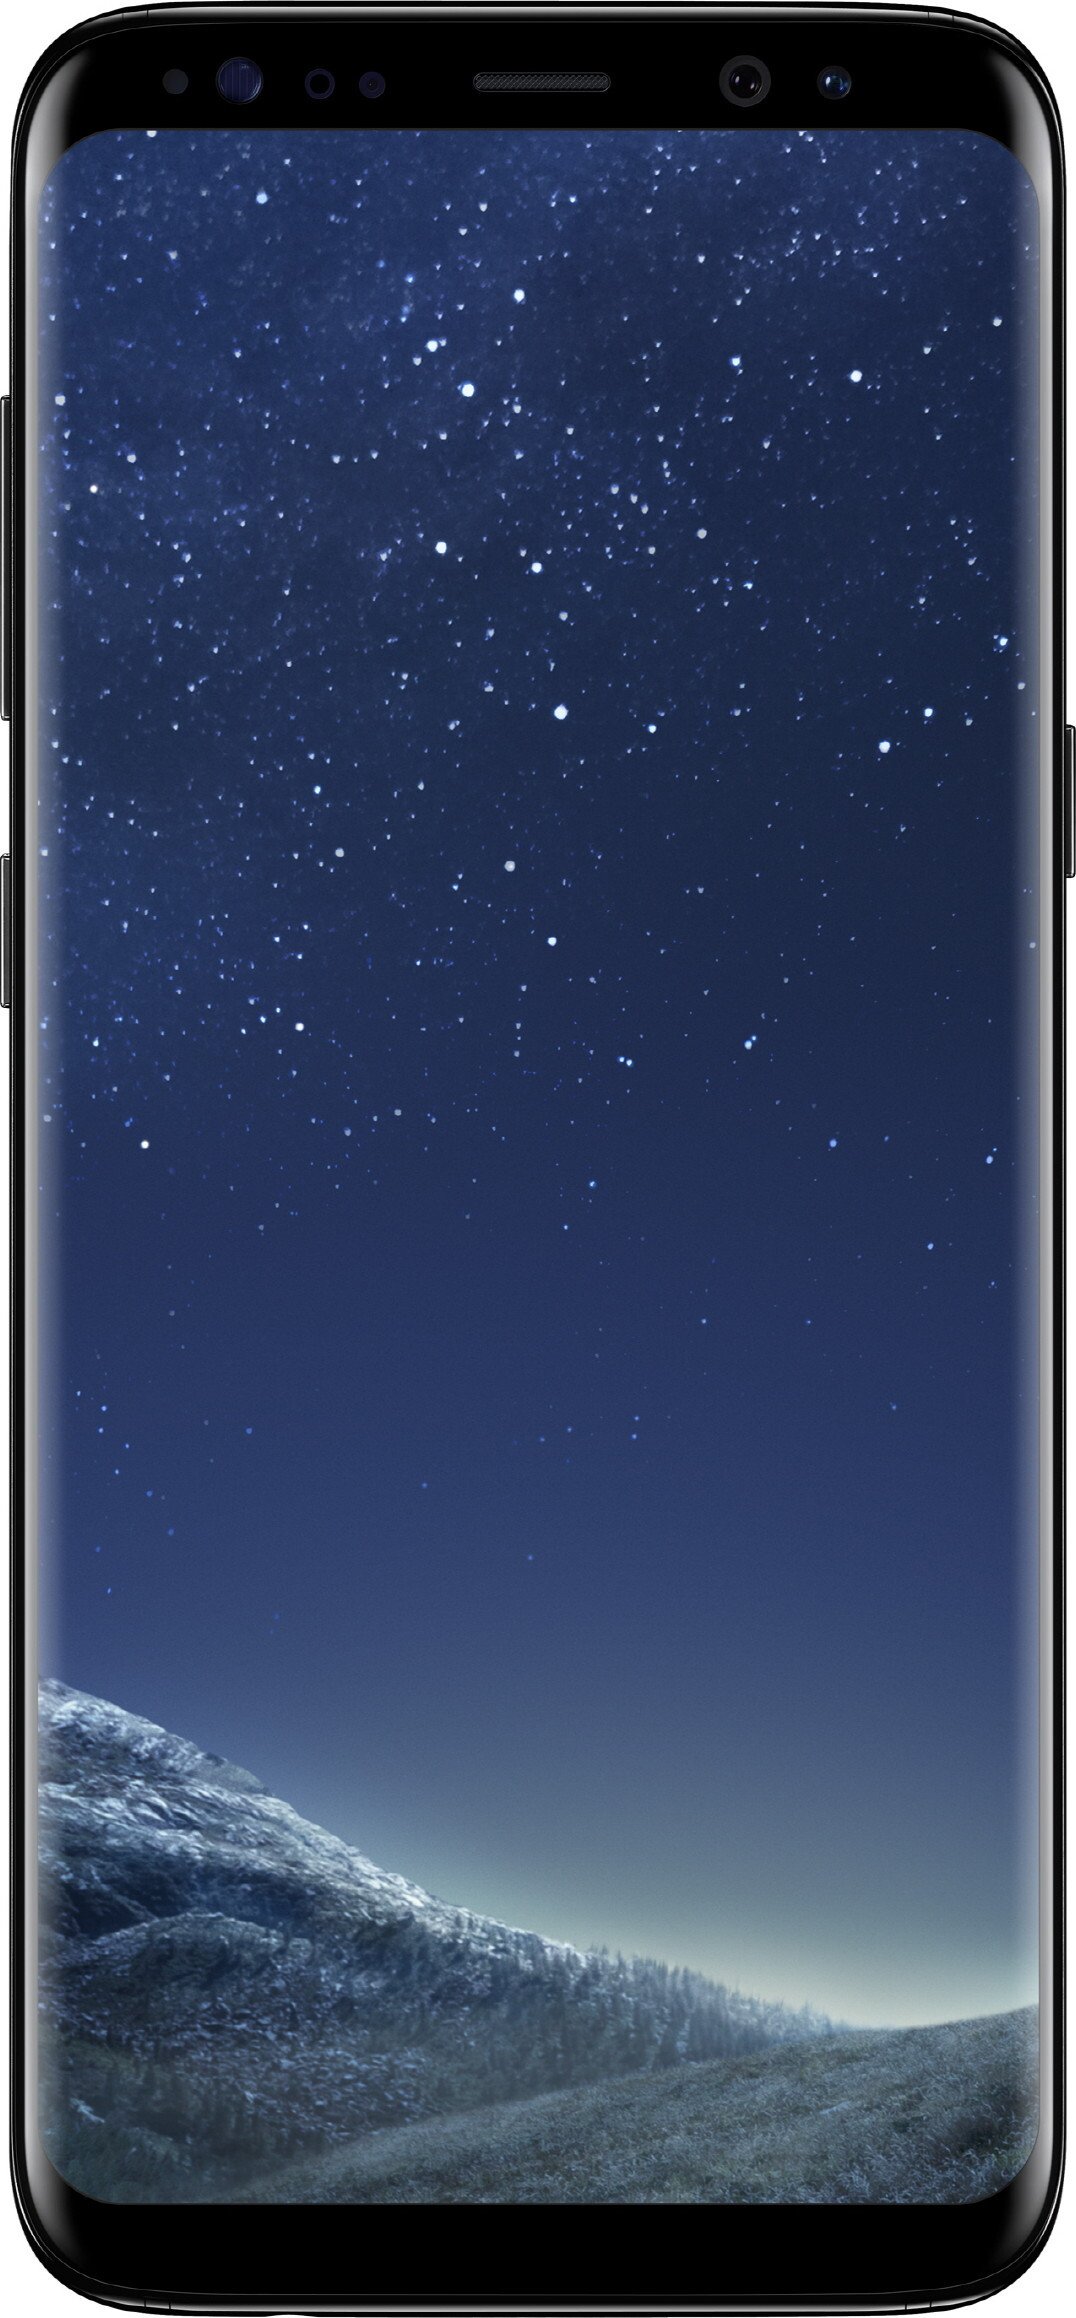 Samsung Galaxy S8 Size - Real life visualization and comparison